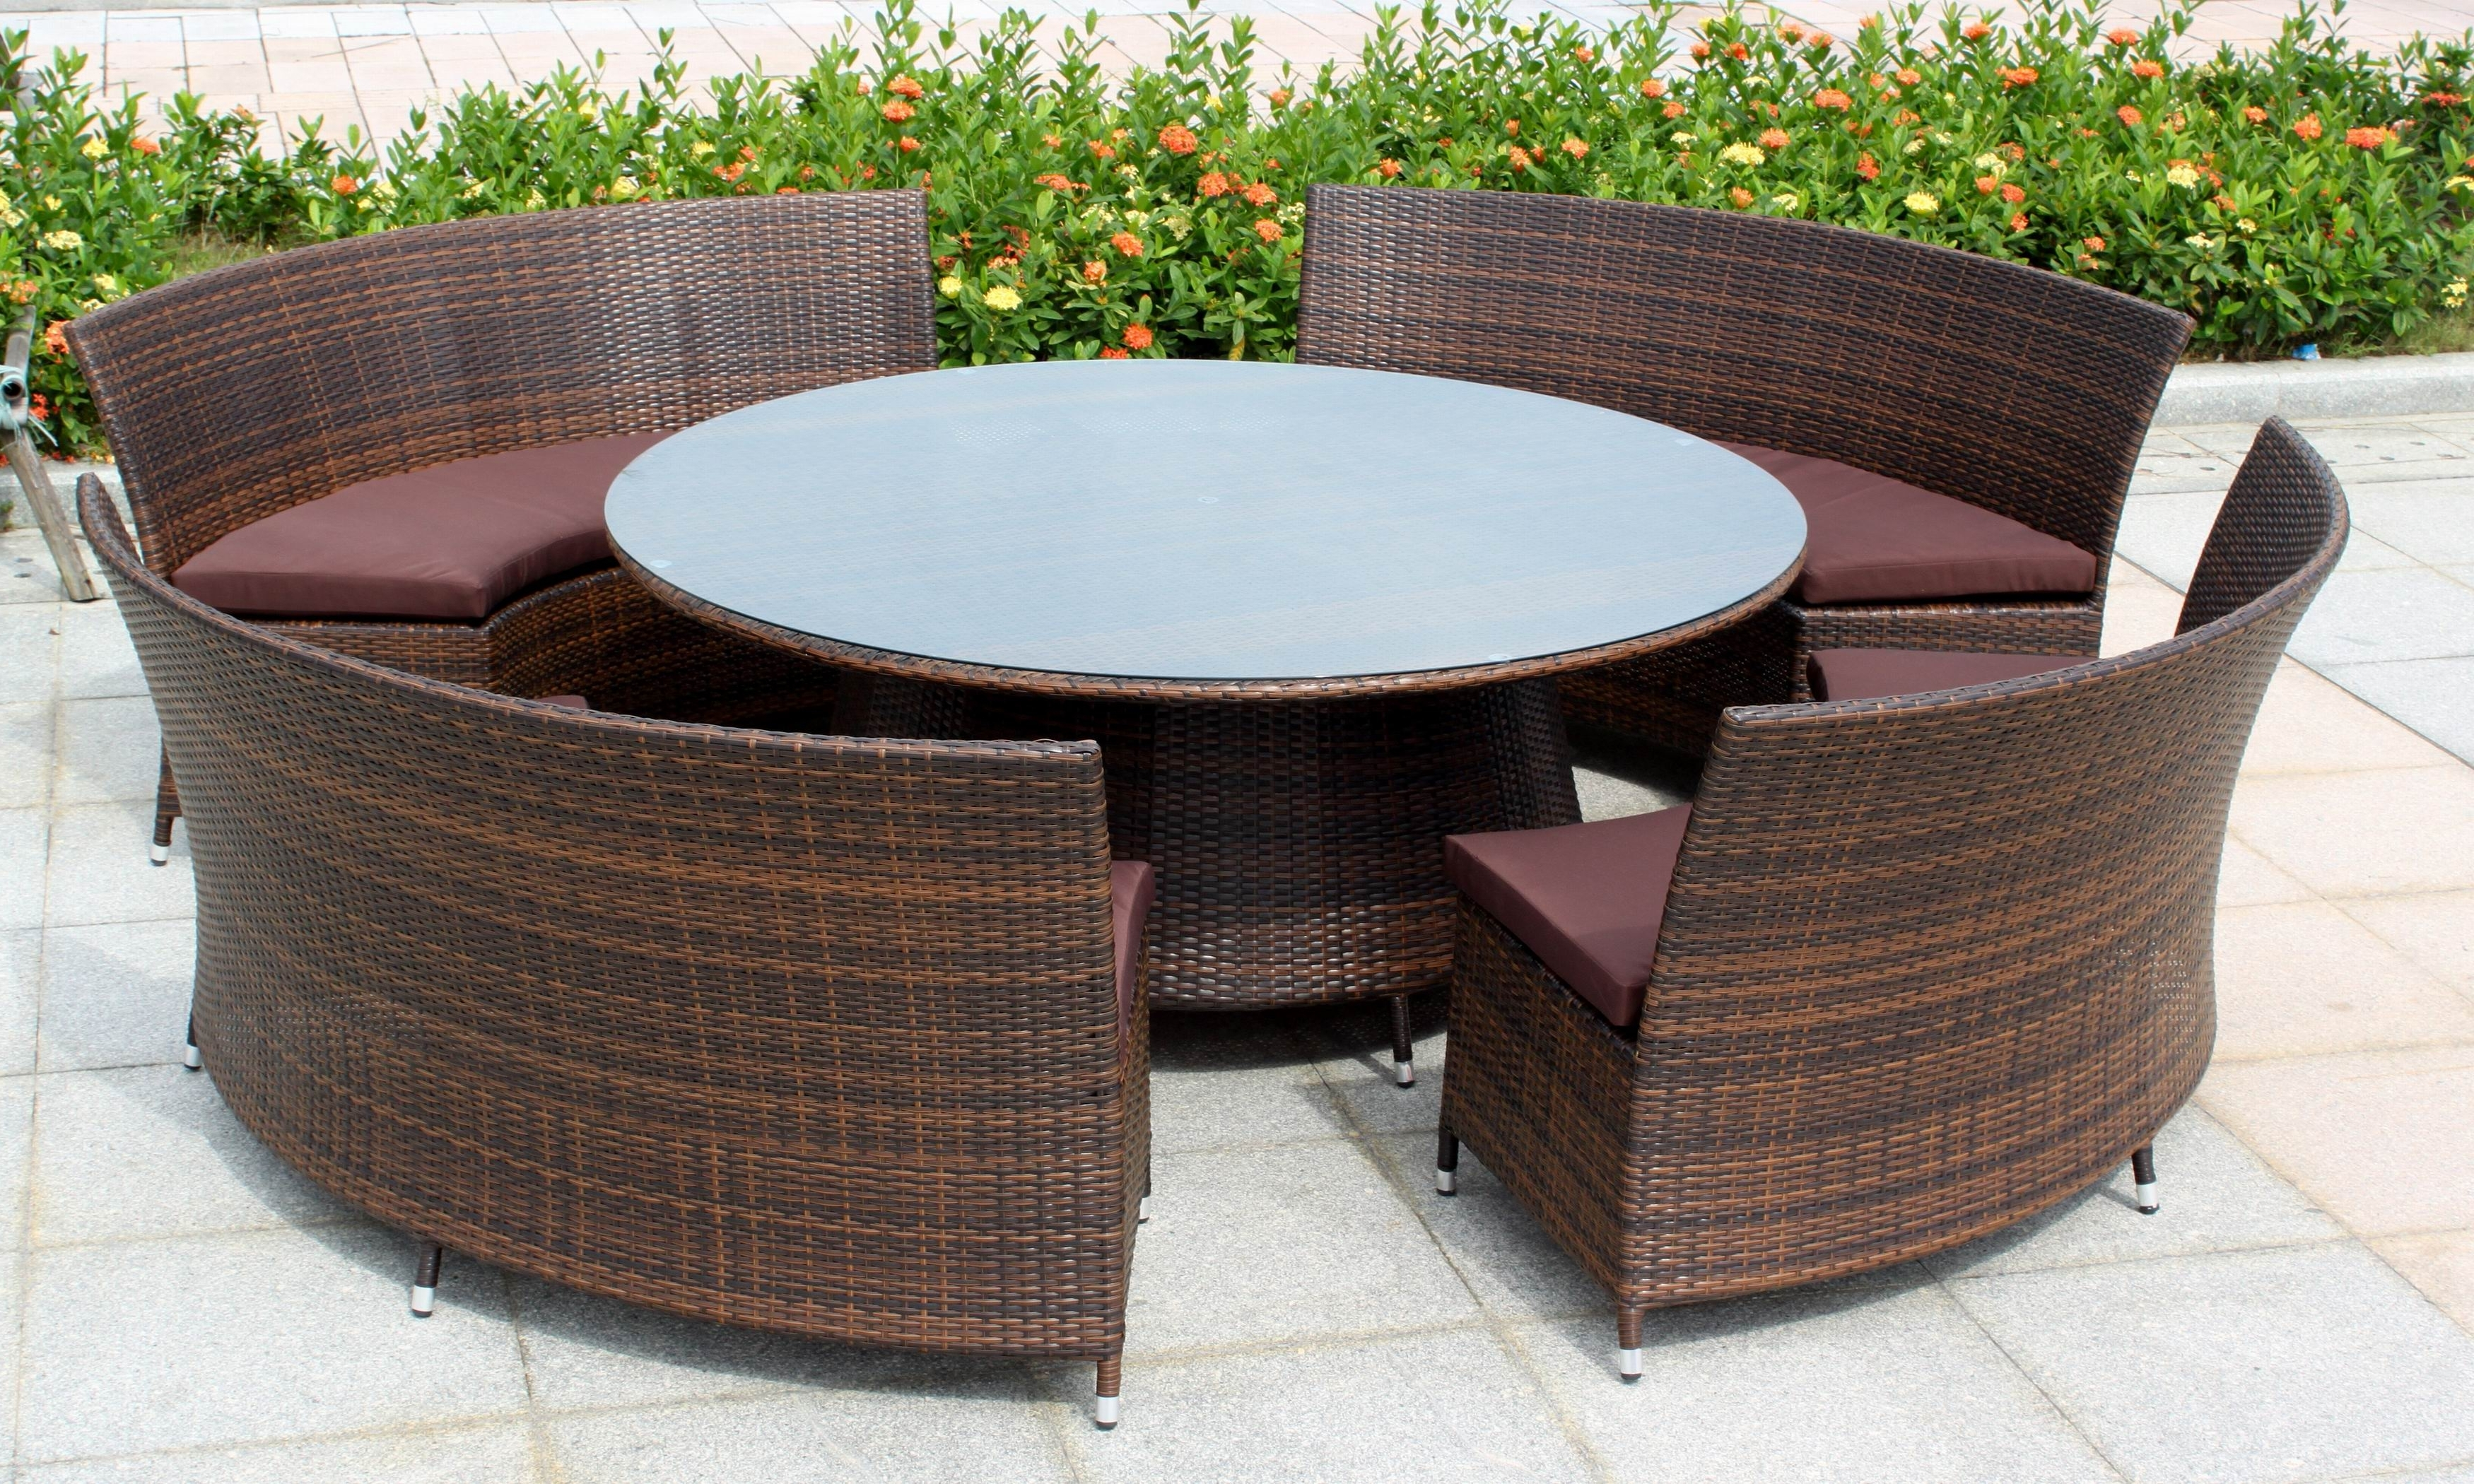 Patio & Garden : Modern Outdoor Furniture Outdoor Furniture Little Pertaining To Fashionable Outdoor Sofas And Chairs (View 16 of 20)